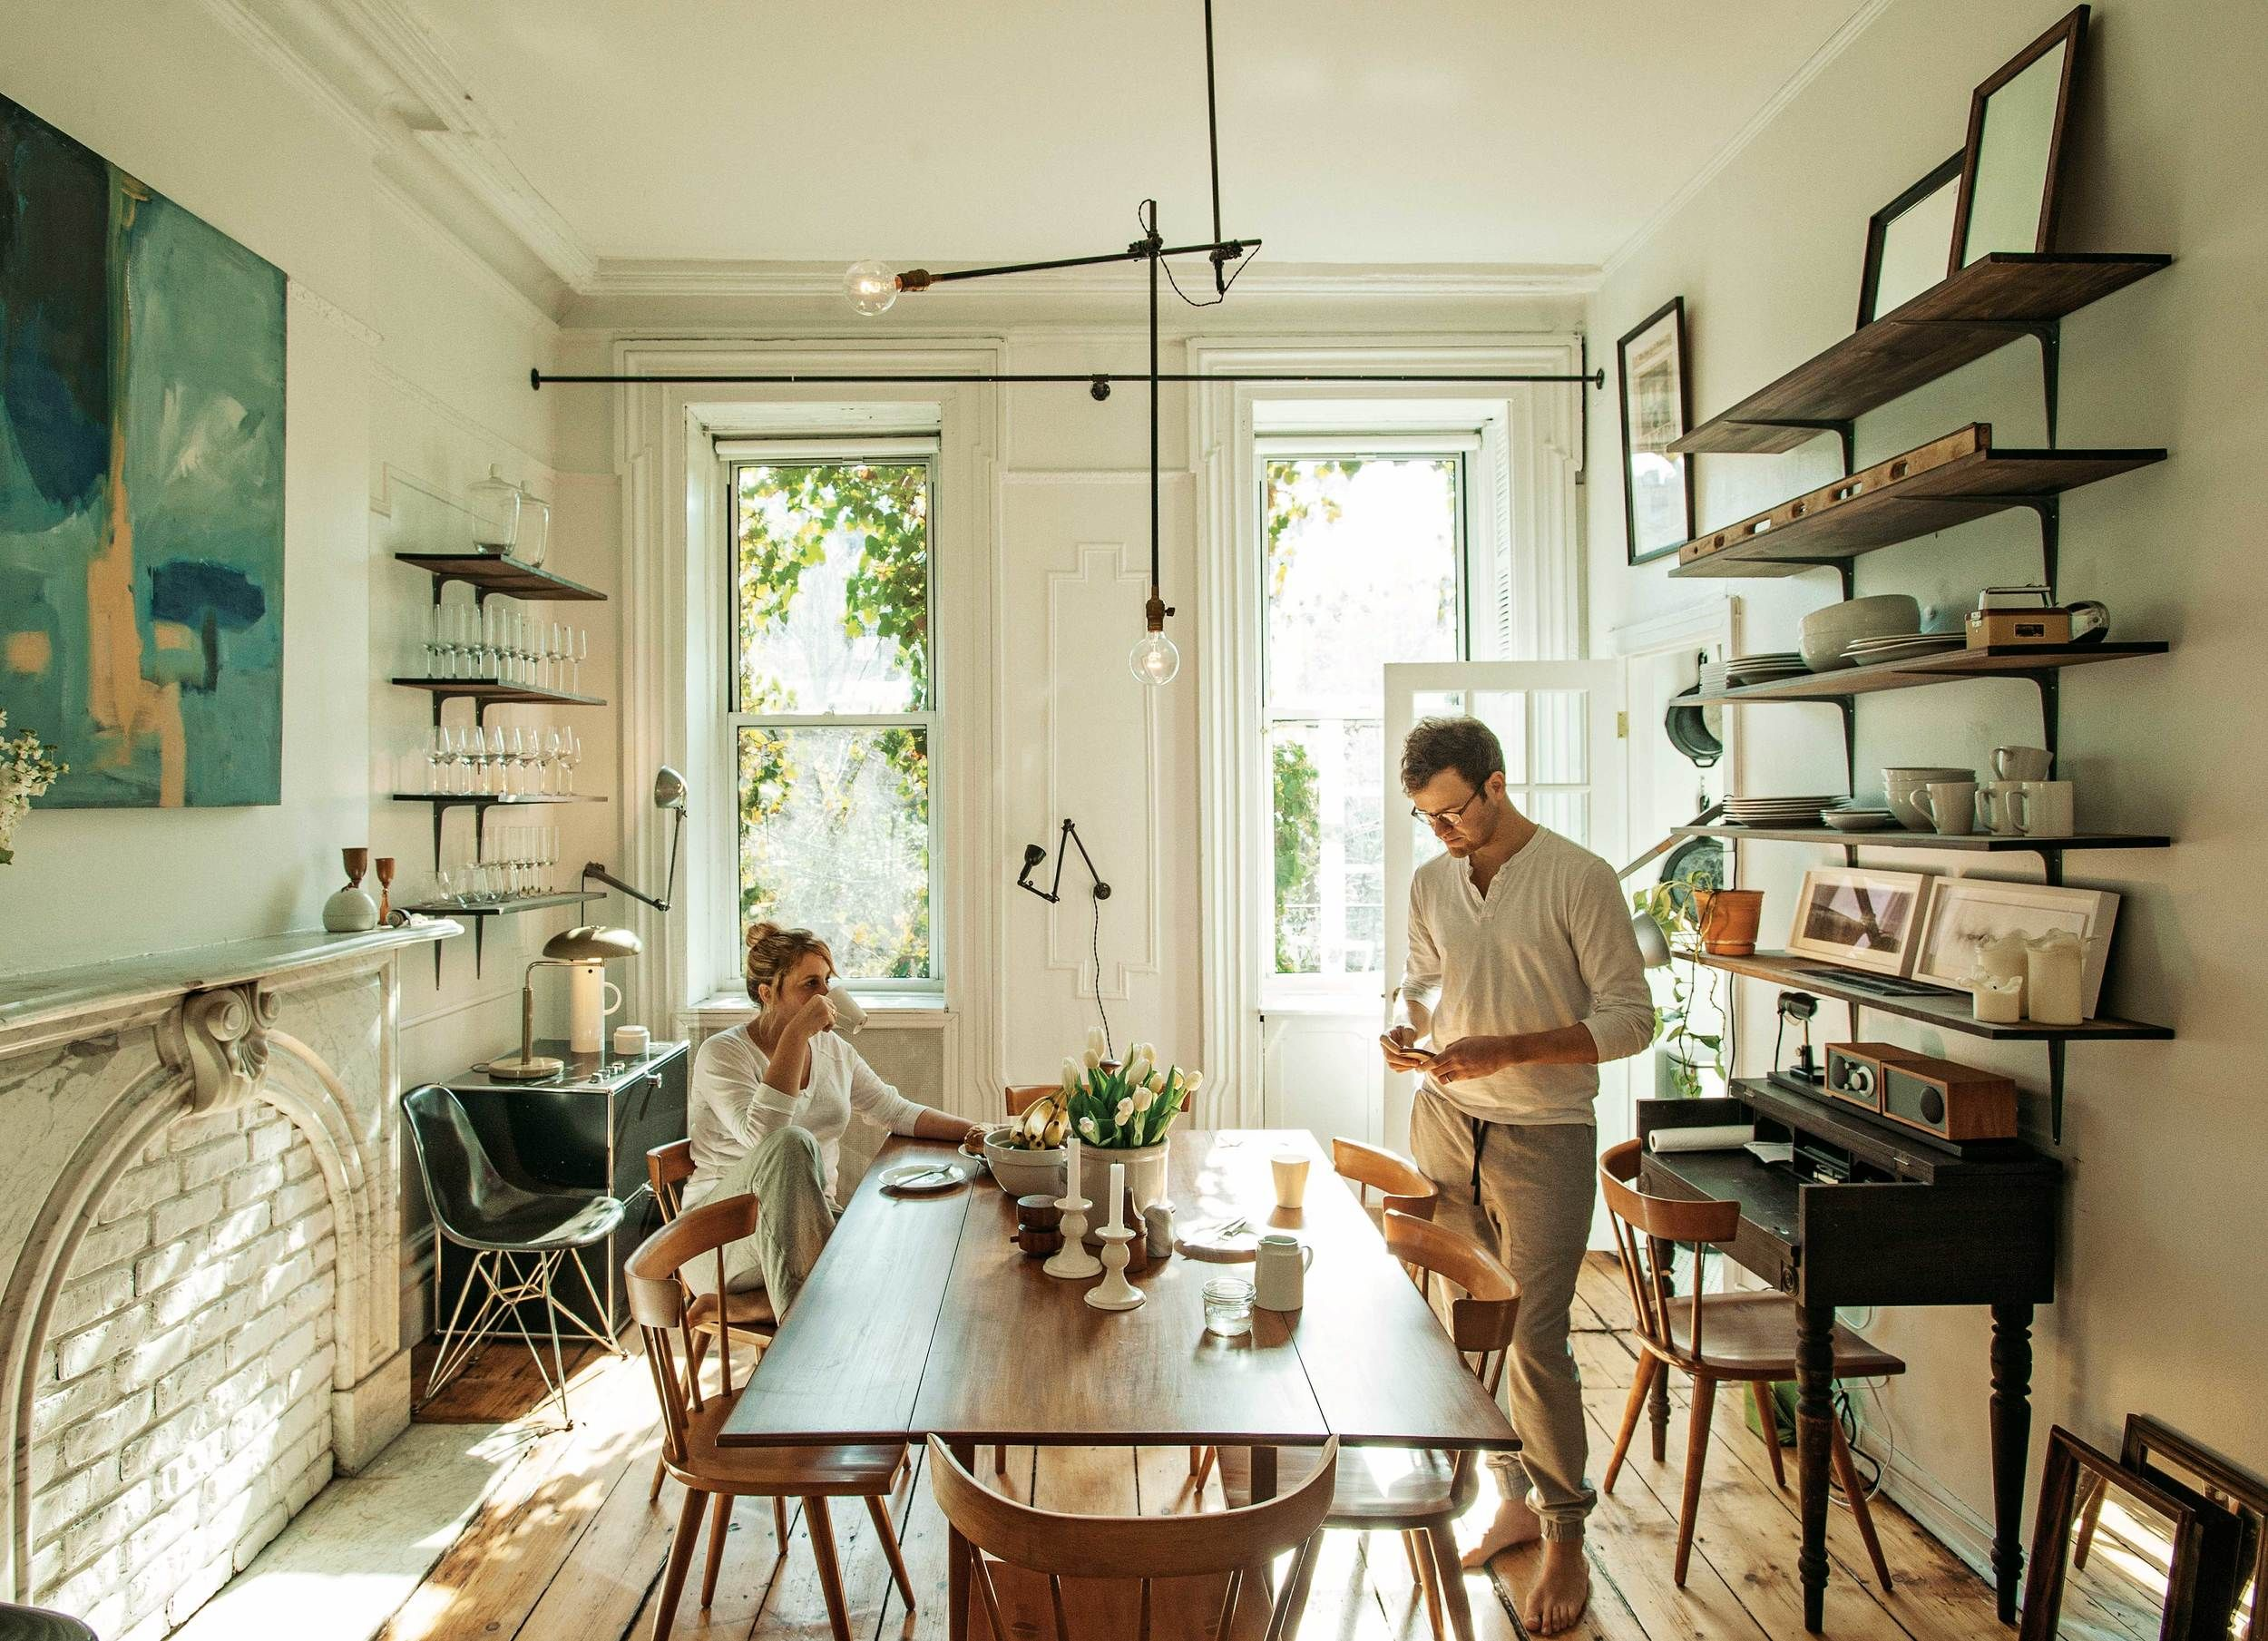 A quintessential Brooklyn dining room in the Cobble Hill home of Robert  Highsmith and Stefanie Brechbuehler. A quintessential Brooklyn dining room in the Cobble Hill home of